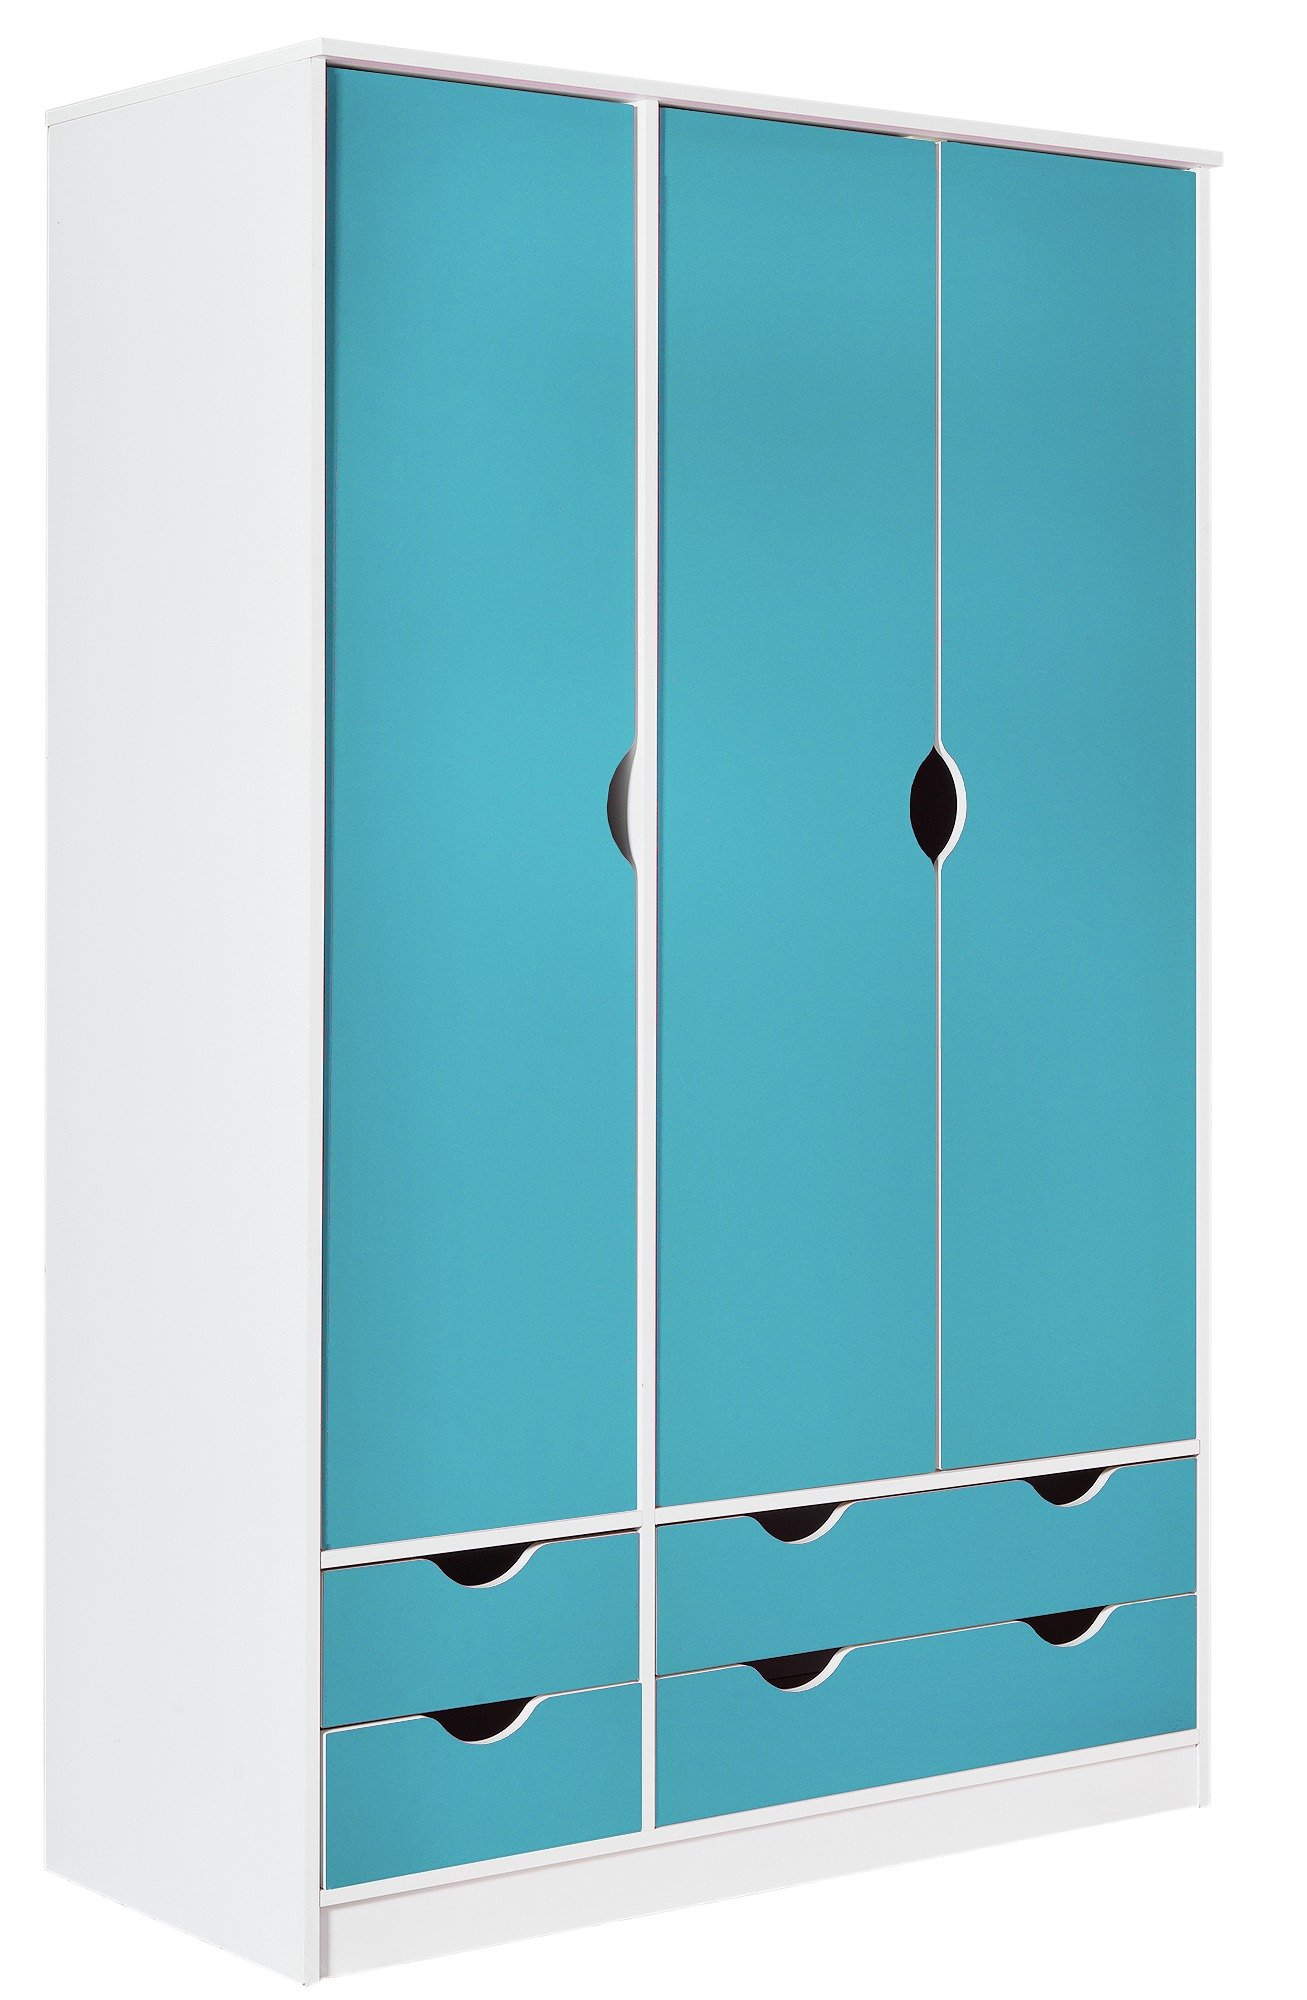 Decor Ideas childrens wardrobe click to zoom zynhsel